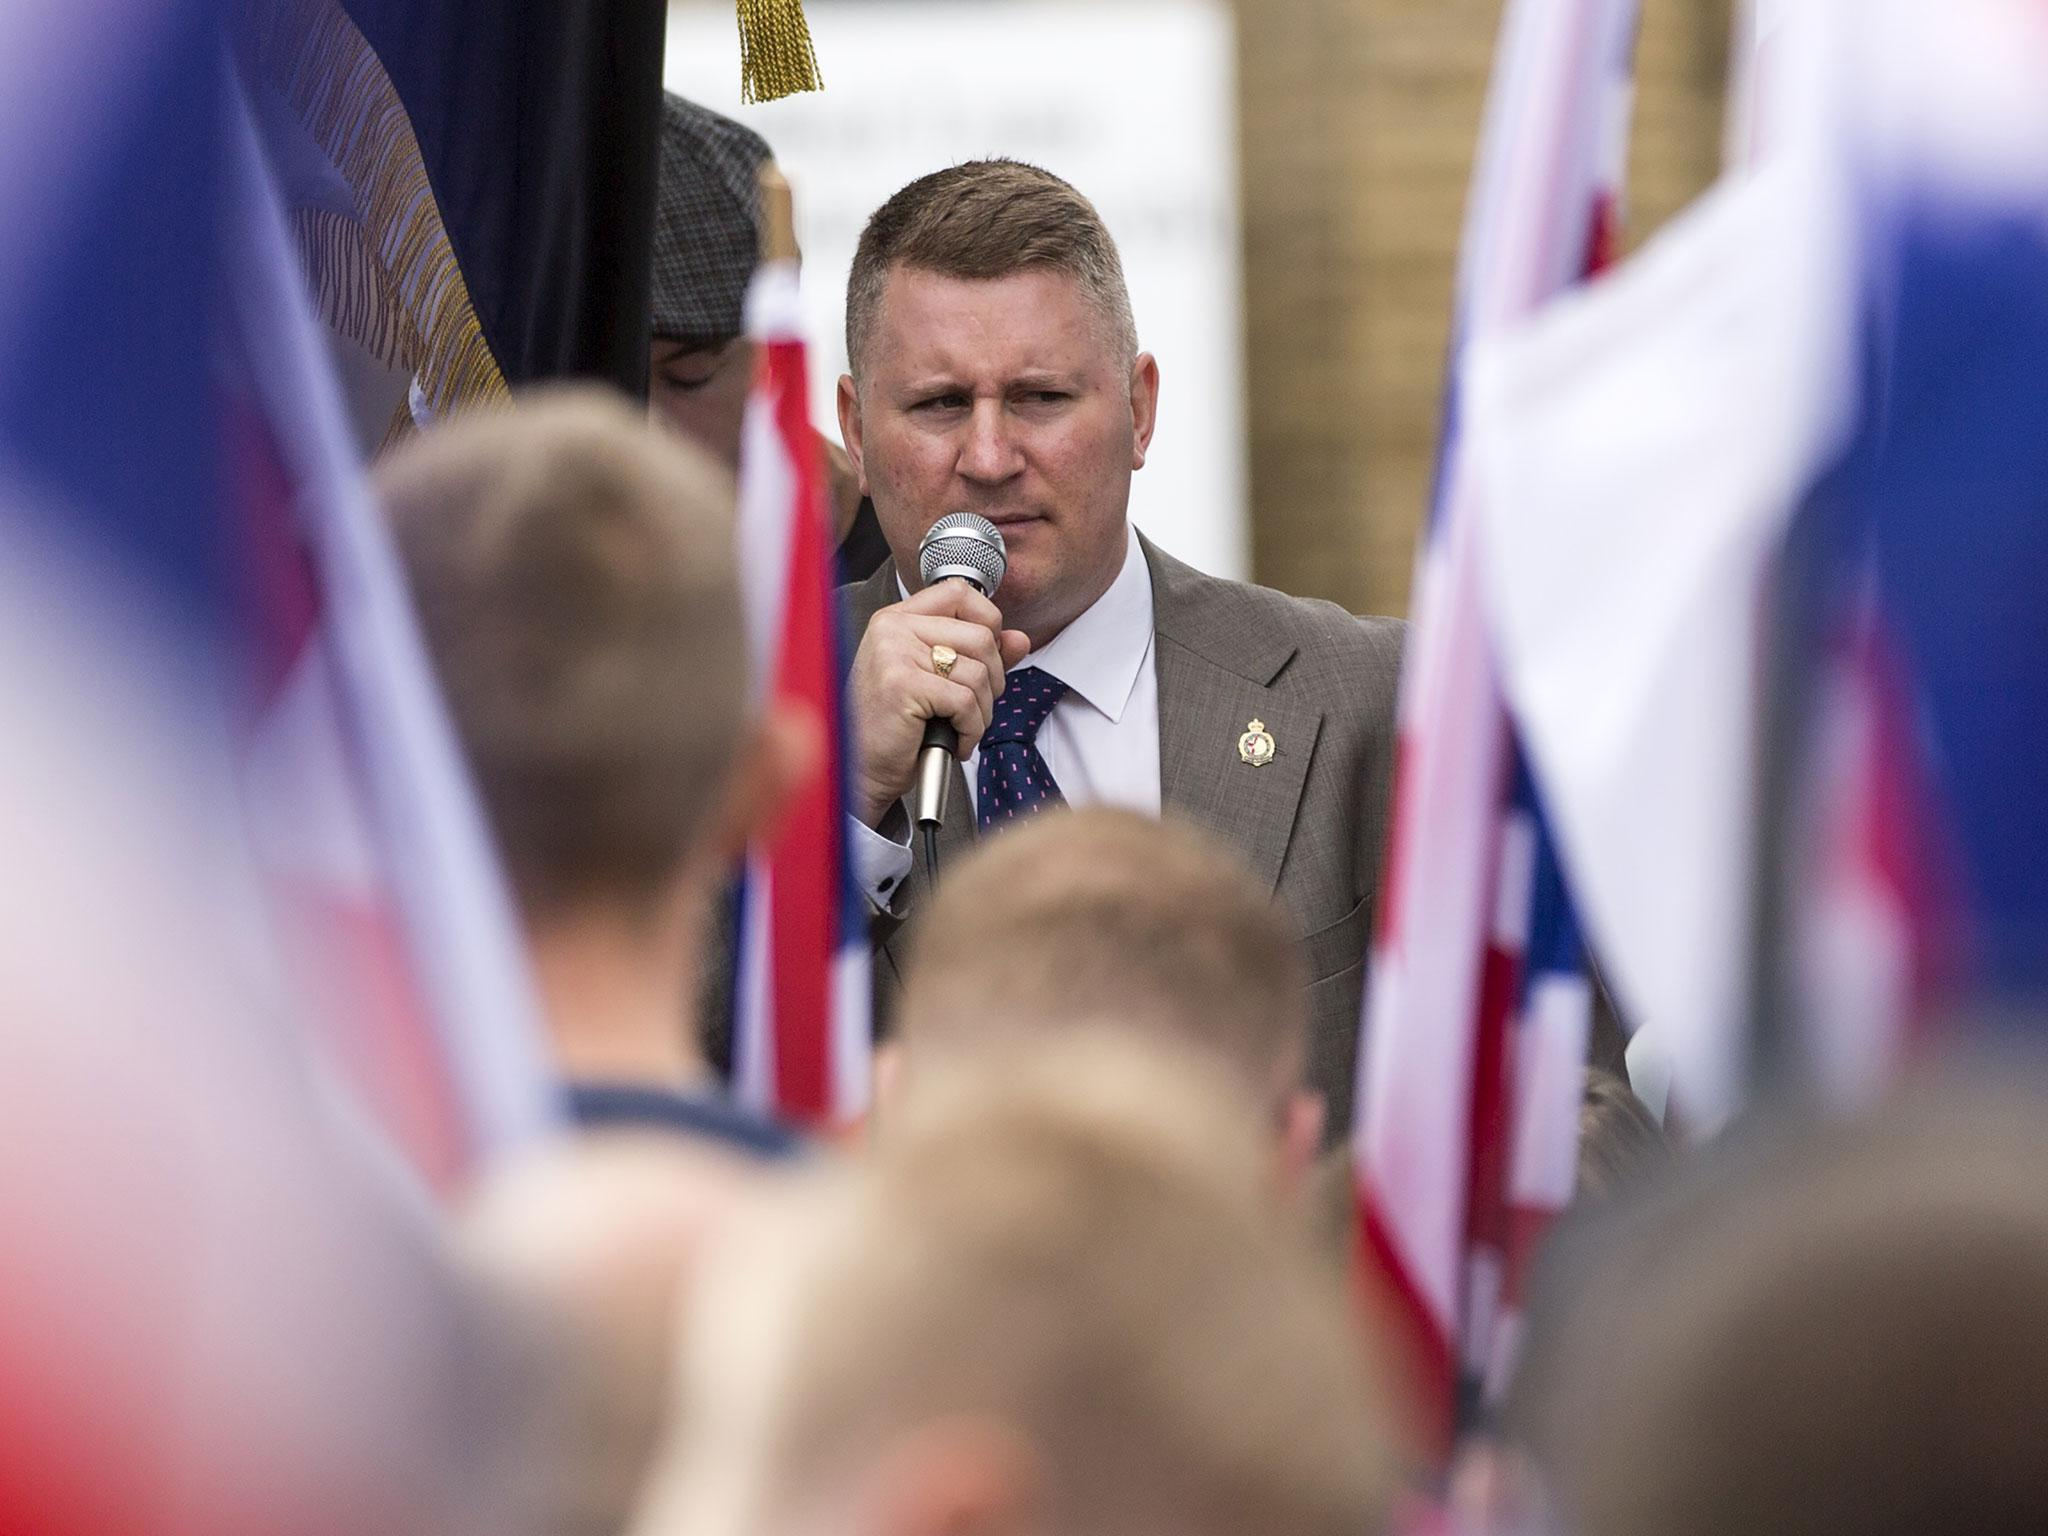 Britain First's leader was just arrested